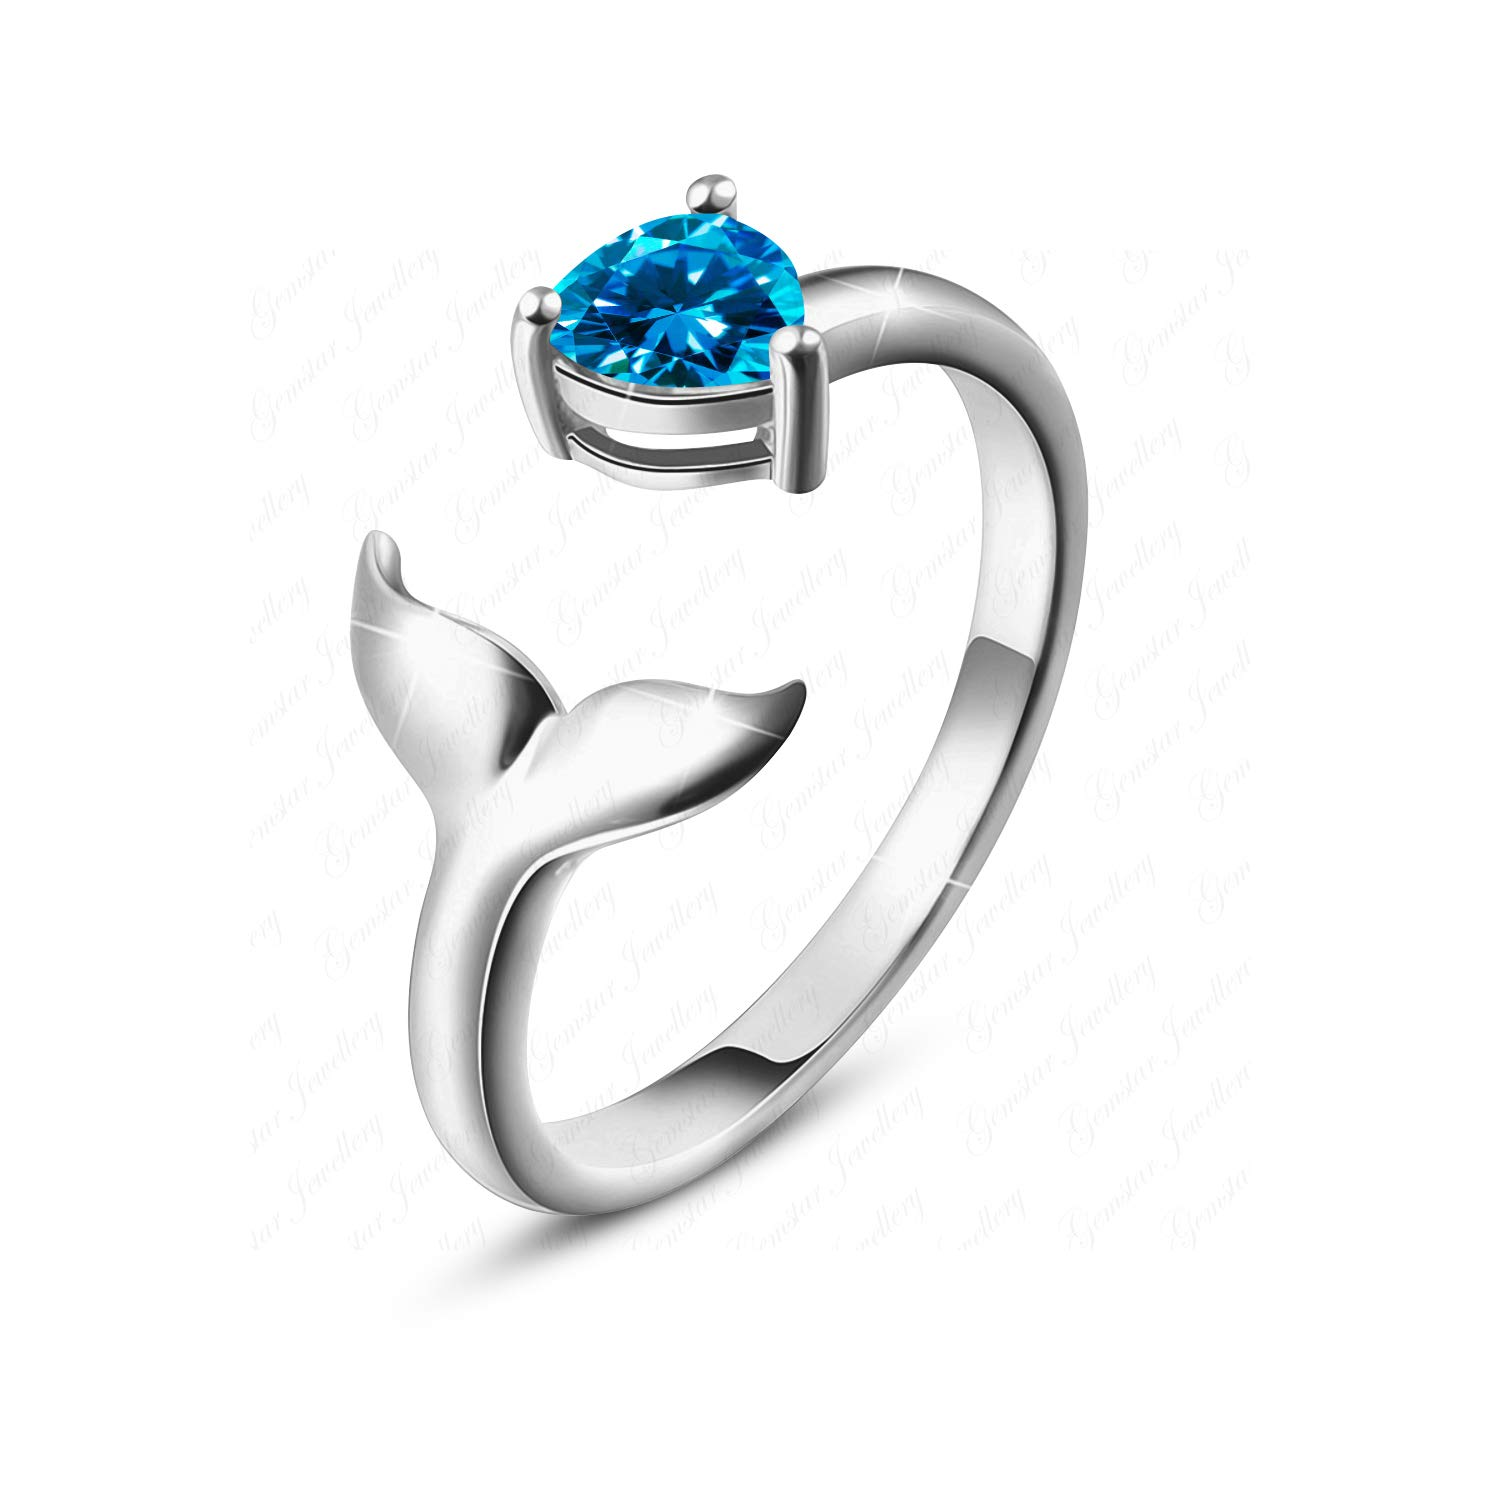 Gemstar Jewellery Excellent Pear Cut Blue Topaz 925 Silver Mermaid Toe Ring in 14k White Gold Plating